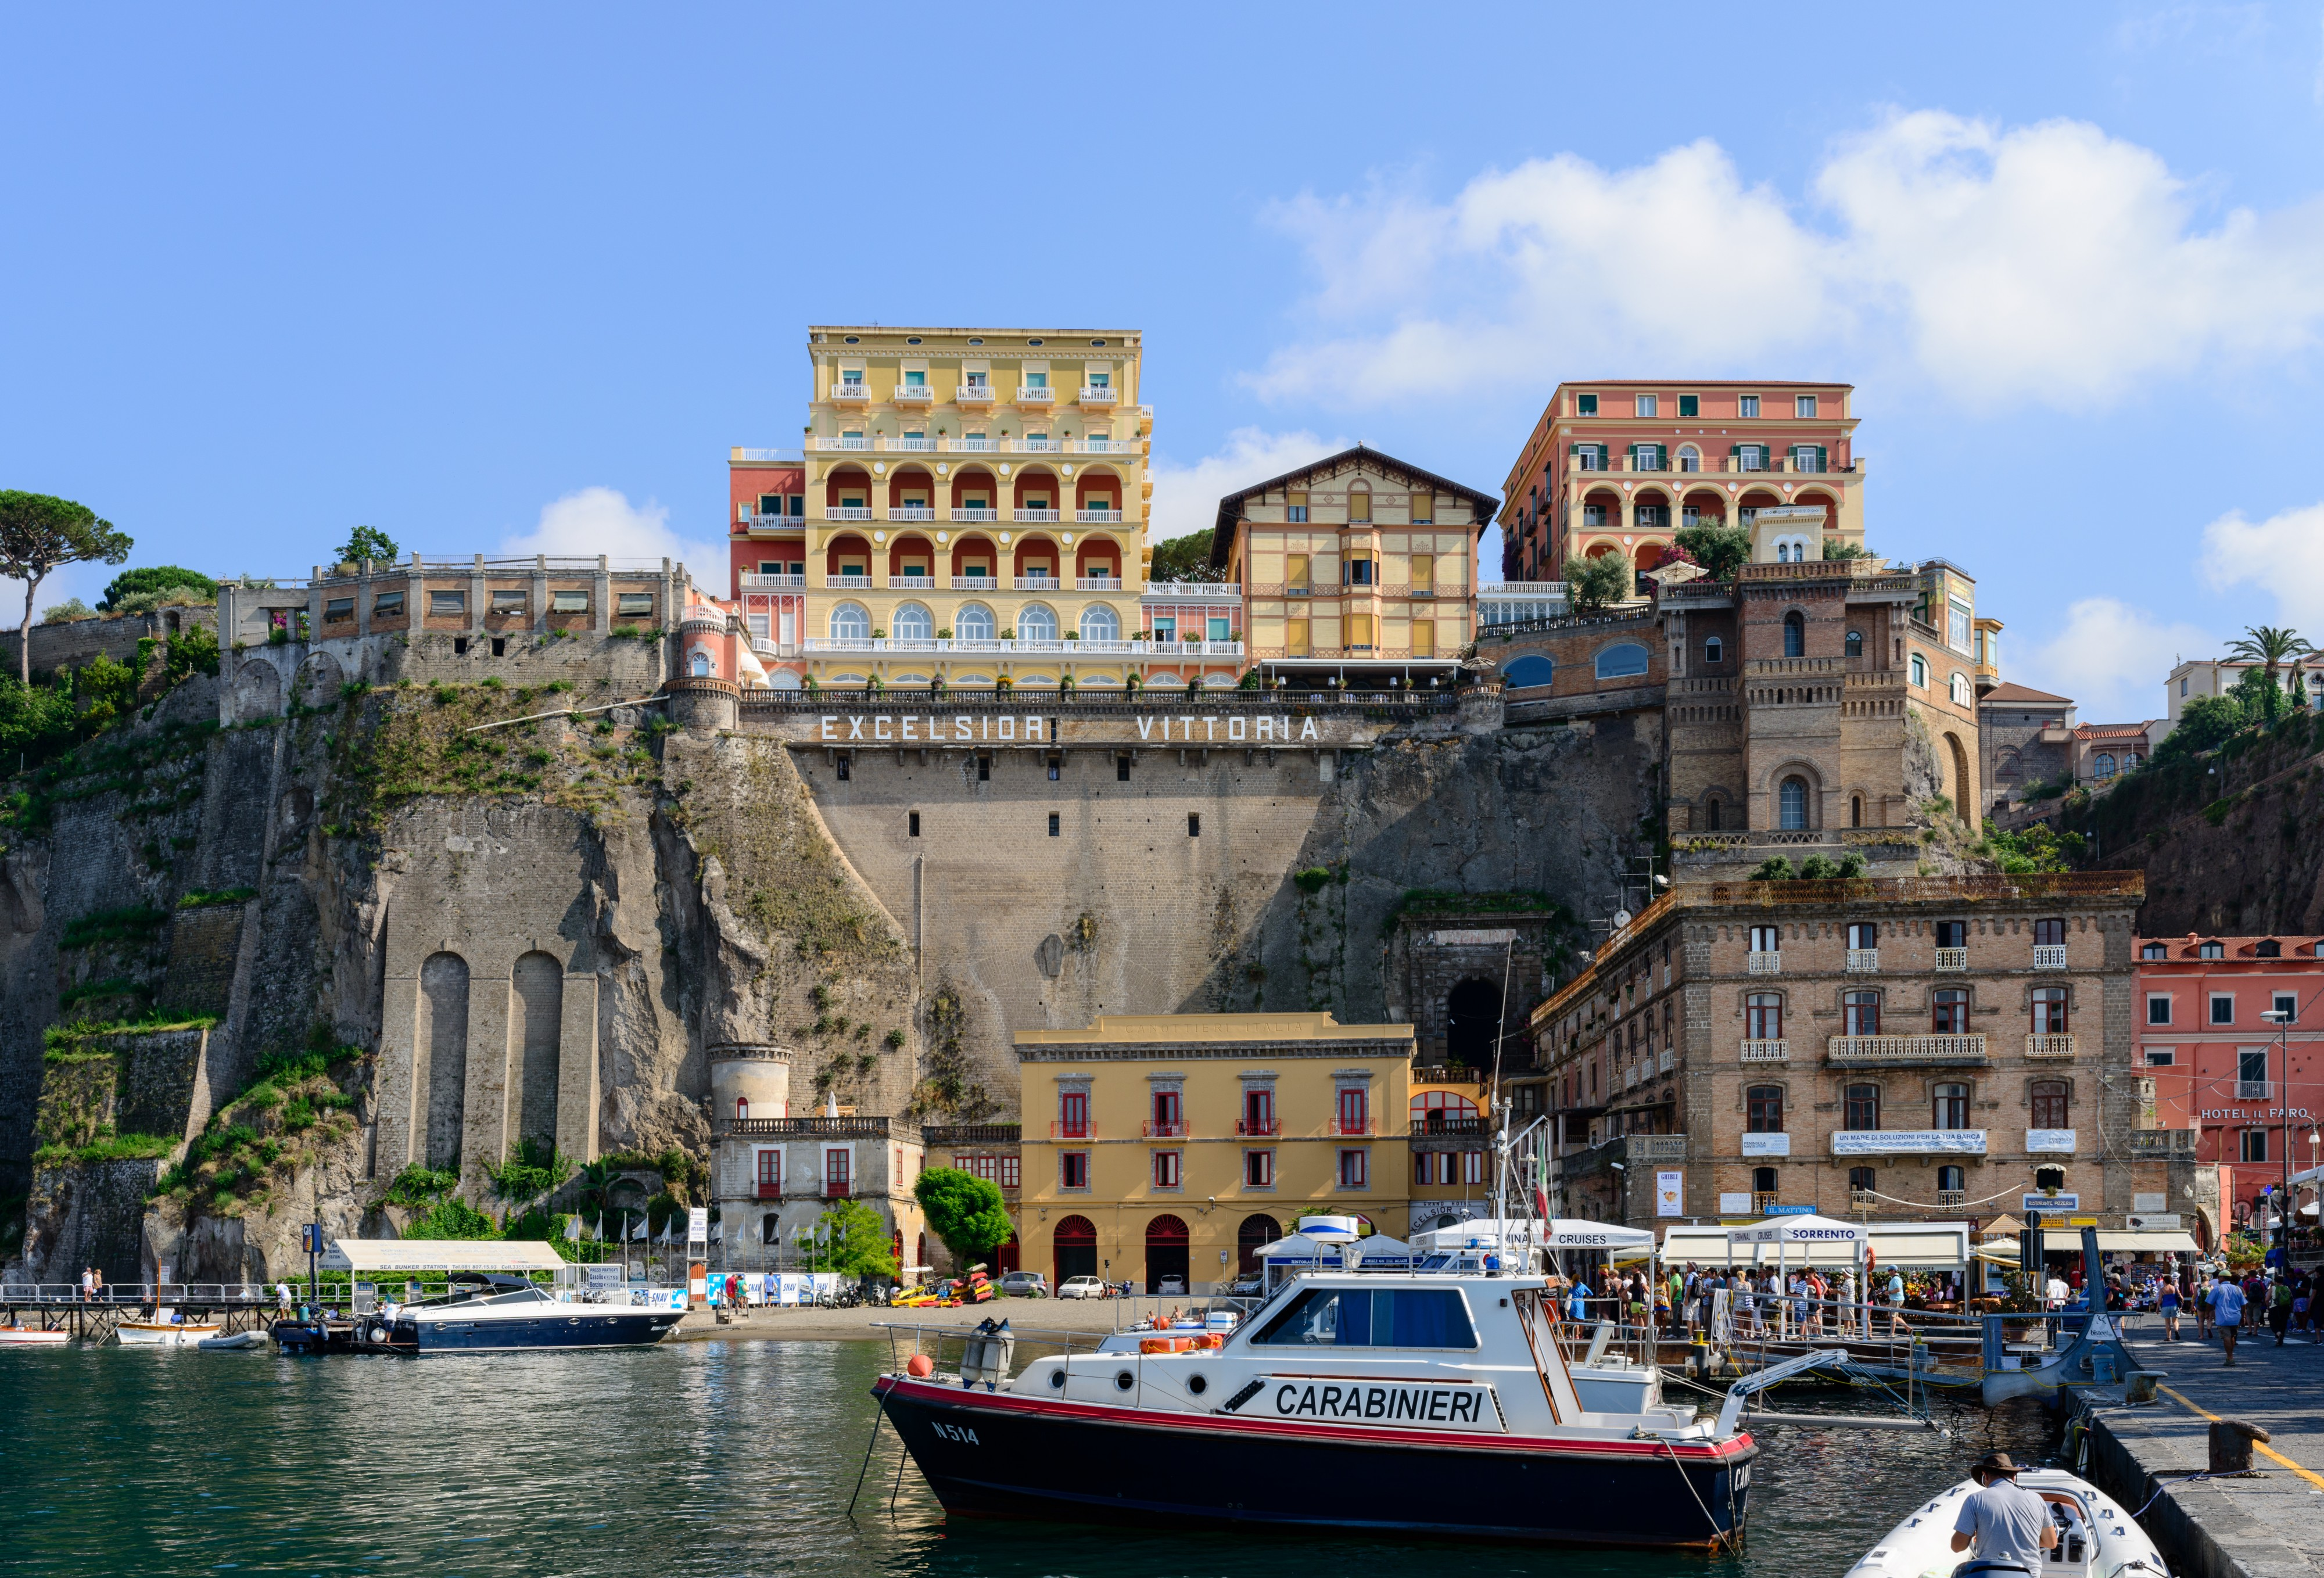 Ferry and yacht port of Sorrento - Campania - Italy - July 12th 2013 - 04